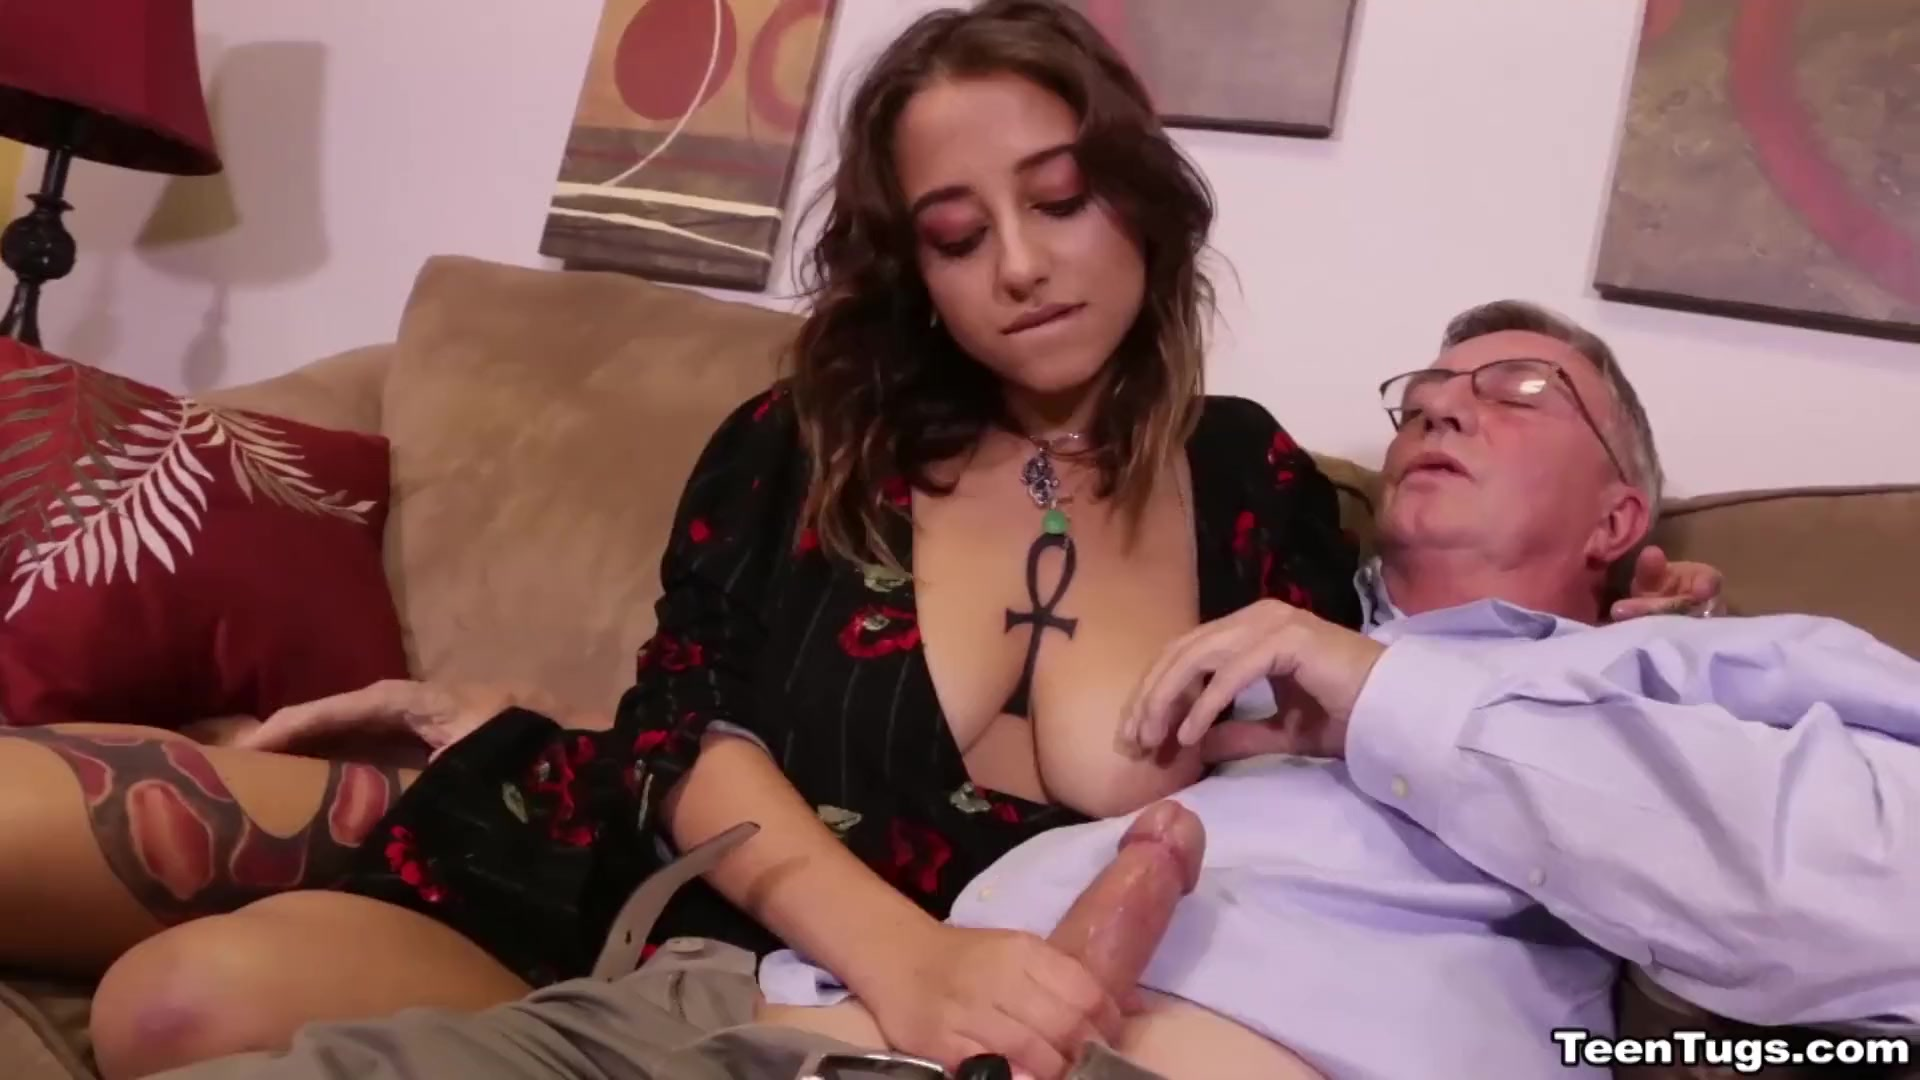 Xxx Showing porn images for nicky sweetheart german porn